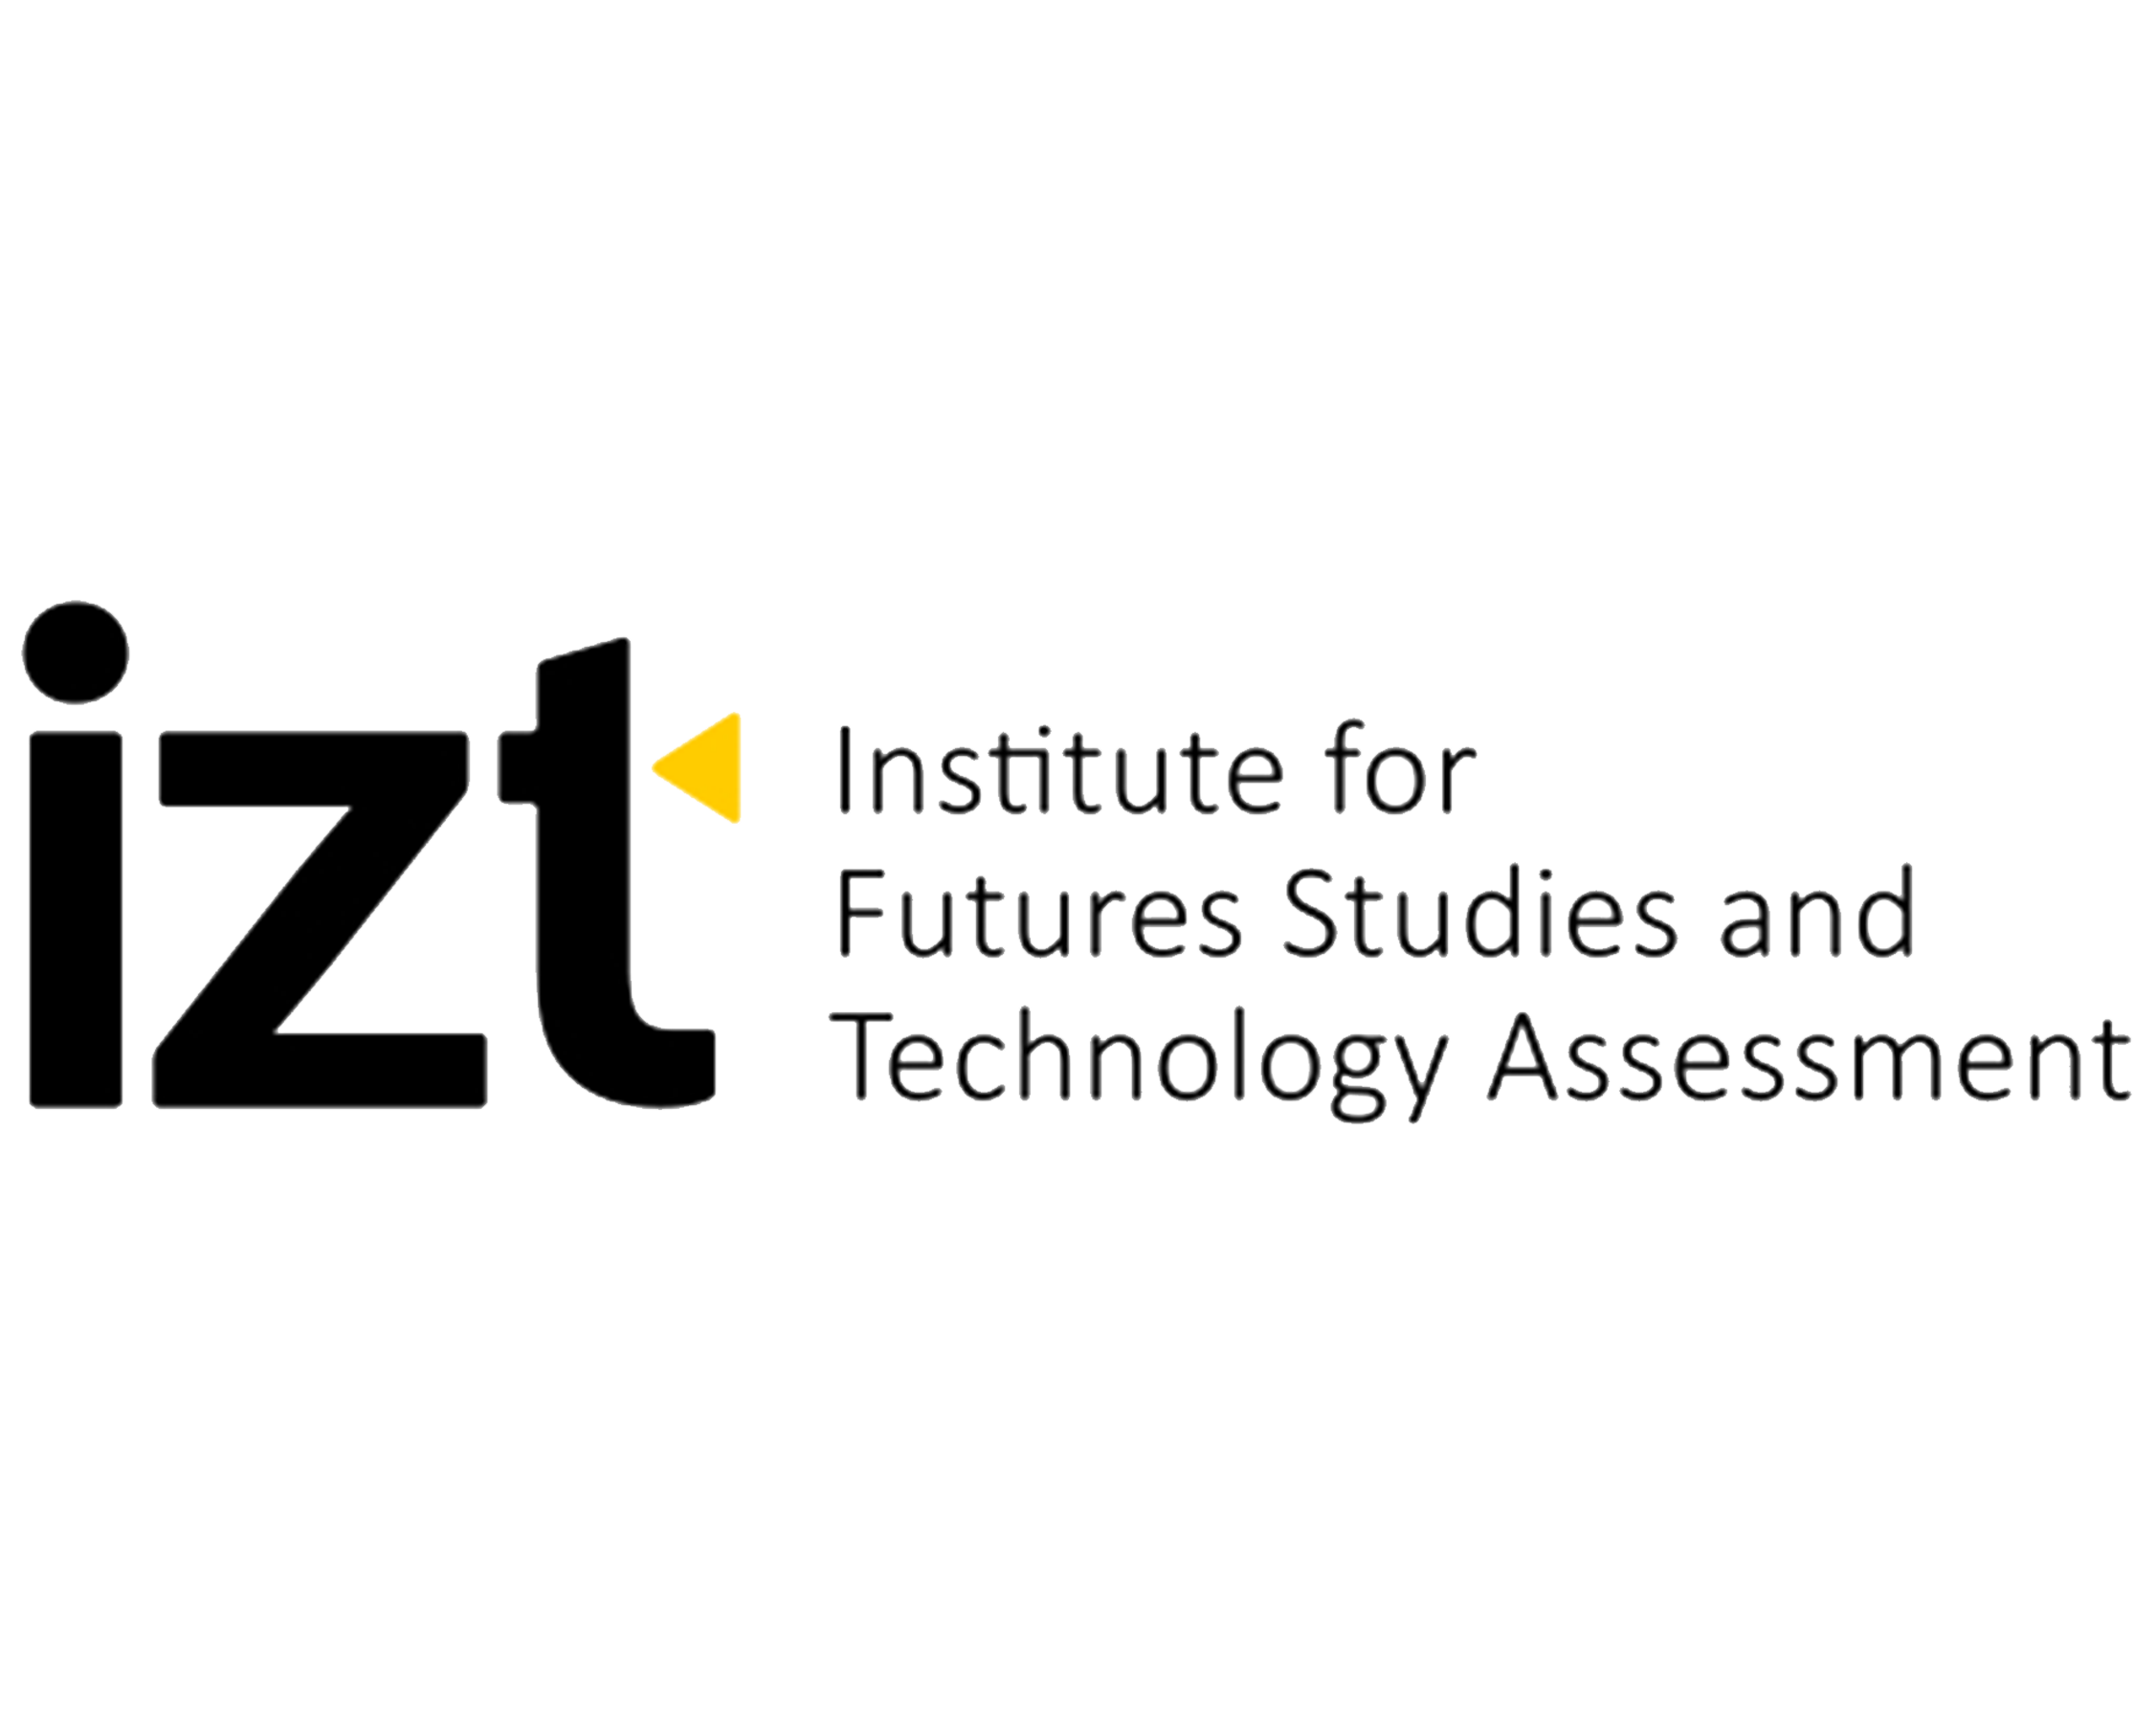 IZT – the Institute for futures studies and technology assessment logo